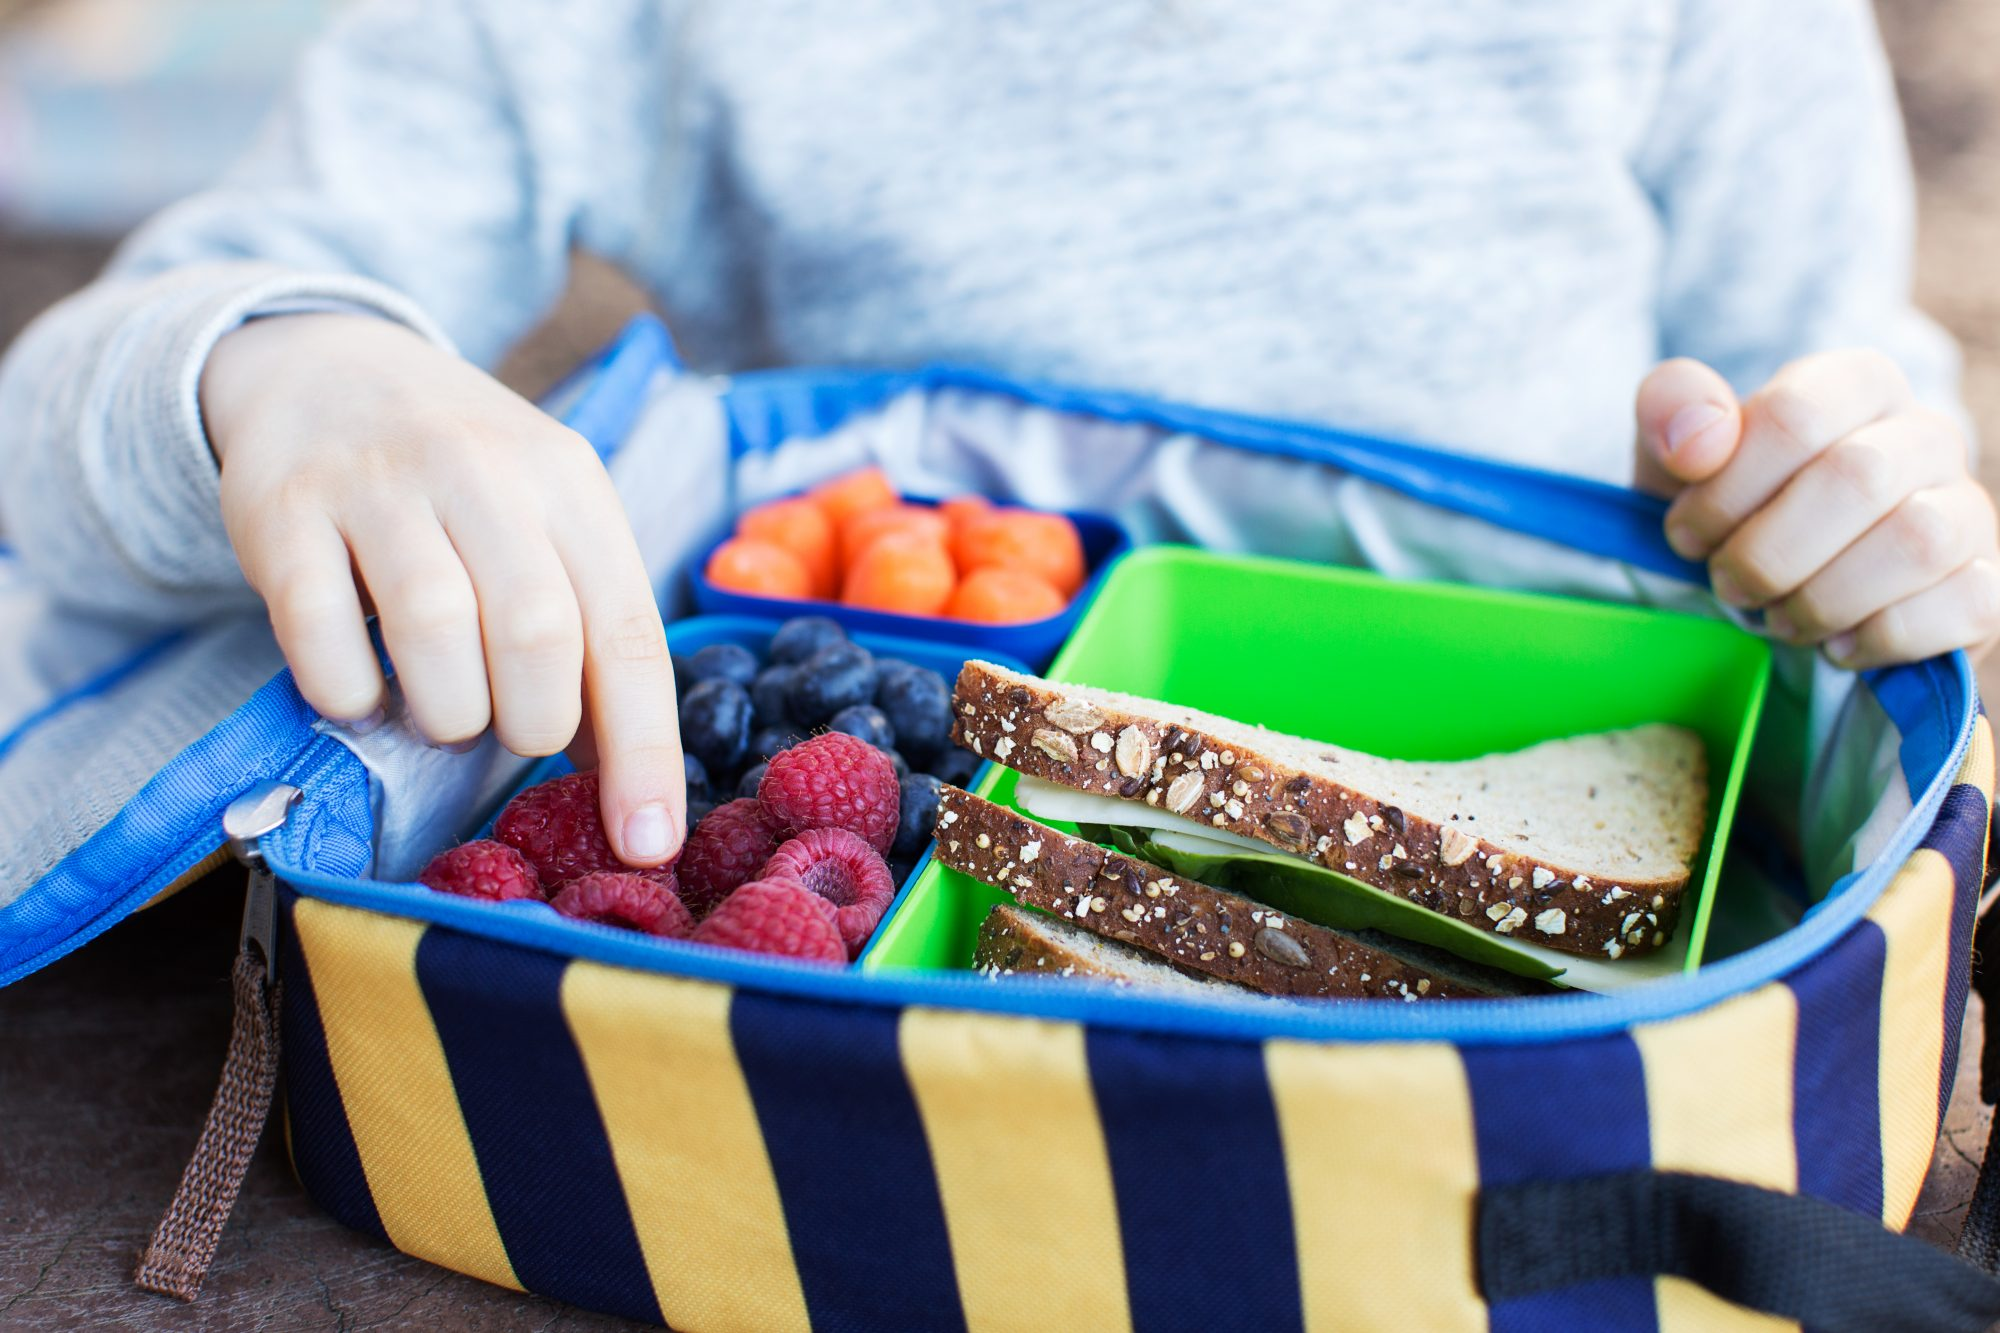 getty-school-lunch-image